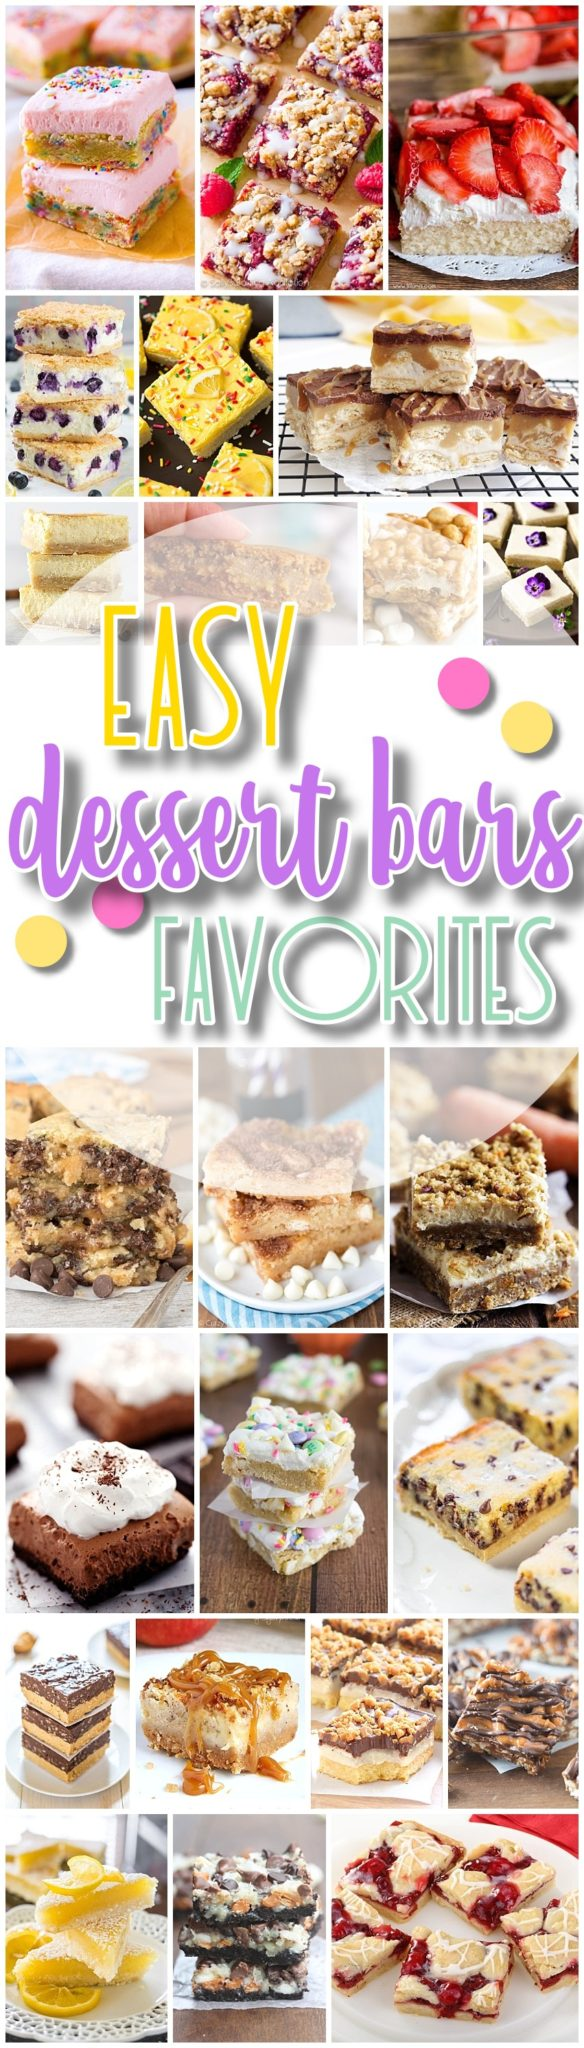 The Best Easy Desserts Bars Recipes - Favorite New Plus Classic Simple Bar Cookies and Quick Big Batch Party Treats Bars for a Crowd - Dreaming in DIY